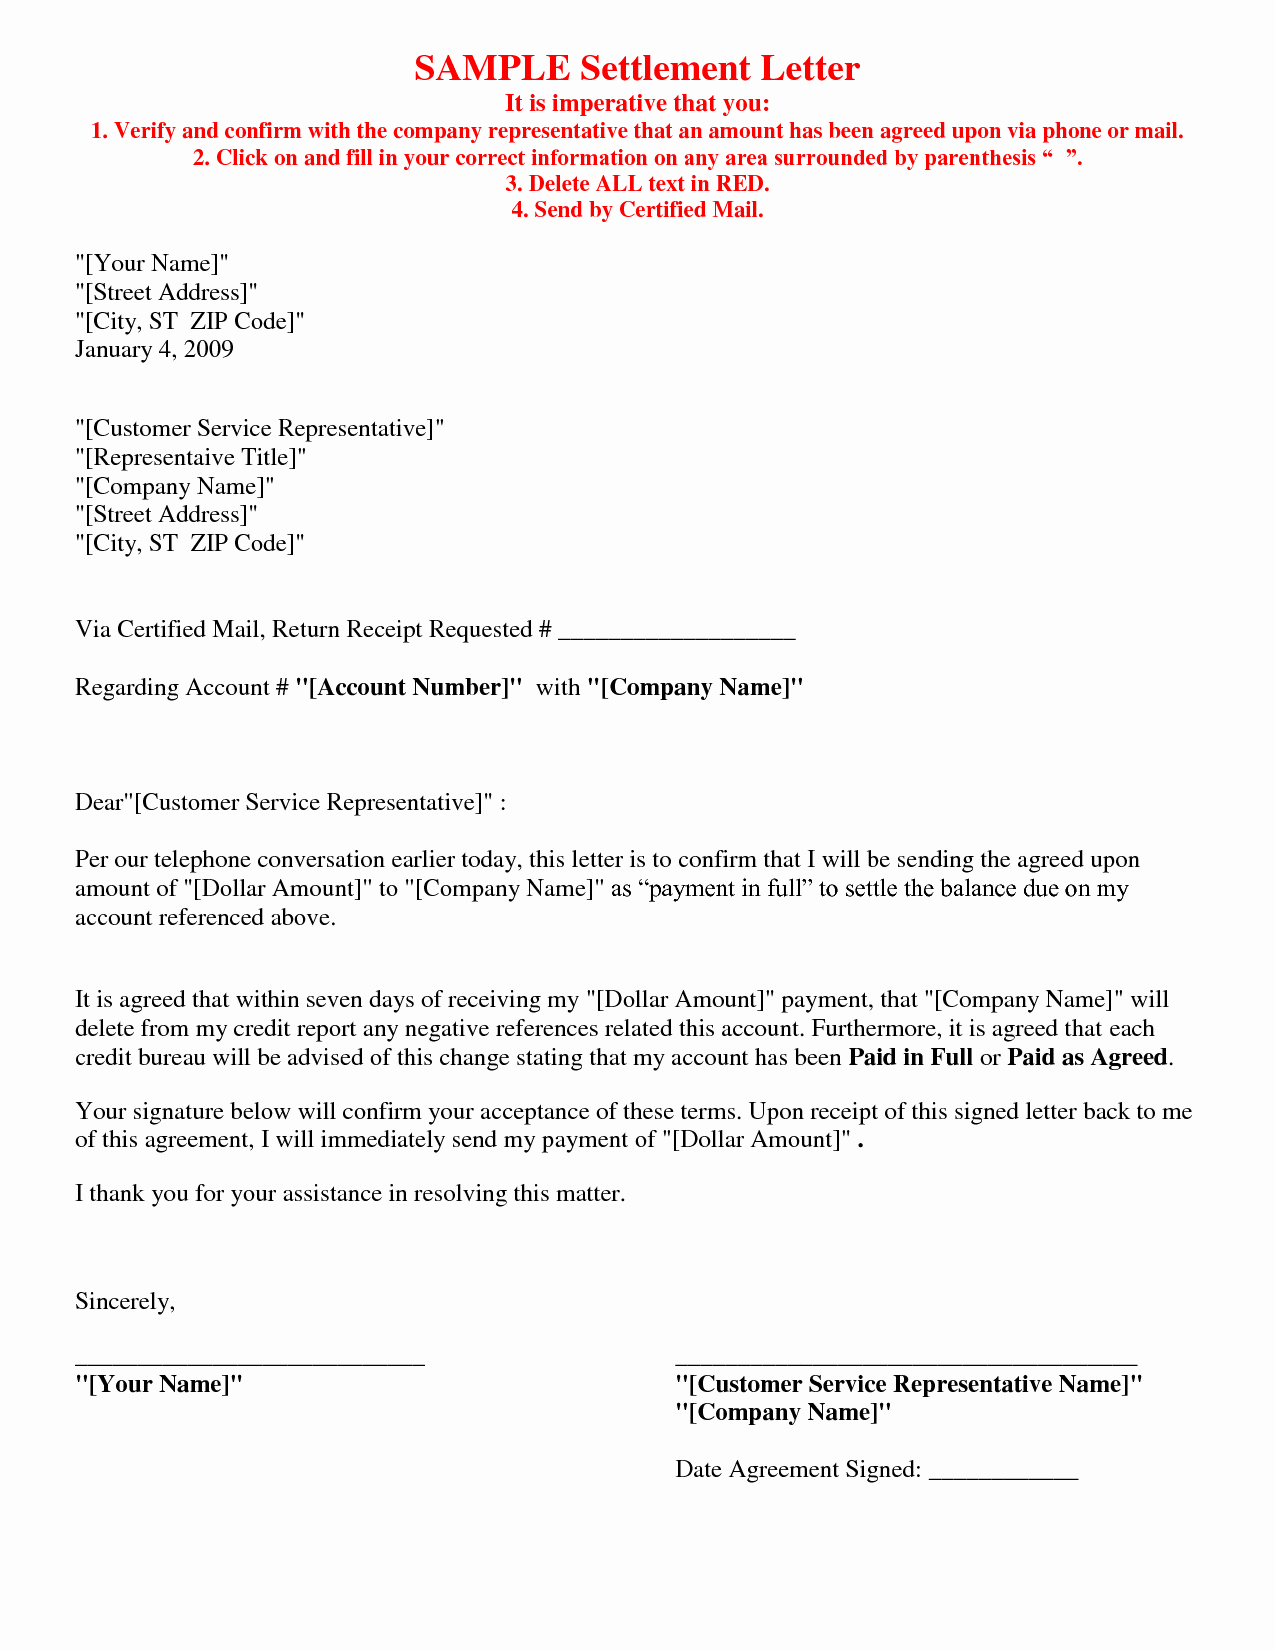 Car Accident Payment Agreement Sample Elegant Picture 5 Of 17 Debt Settlement Agreement Letter